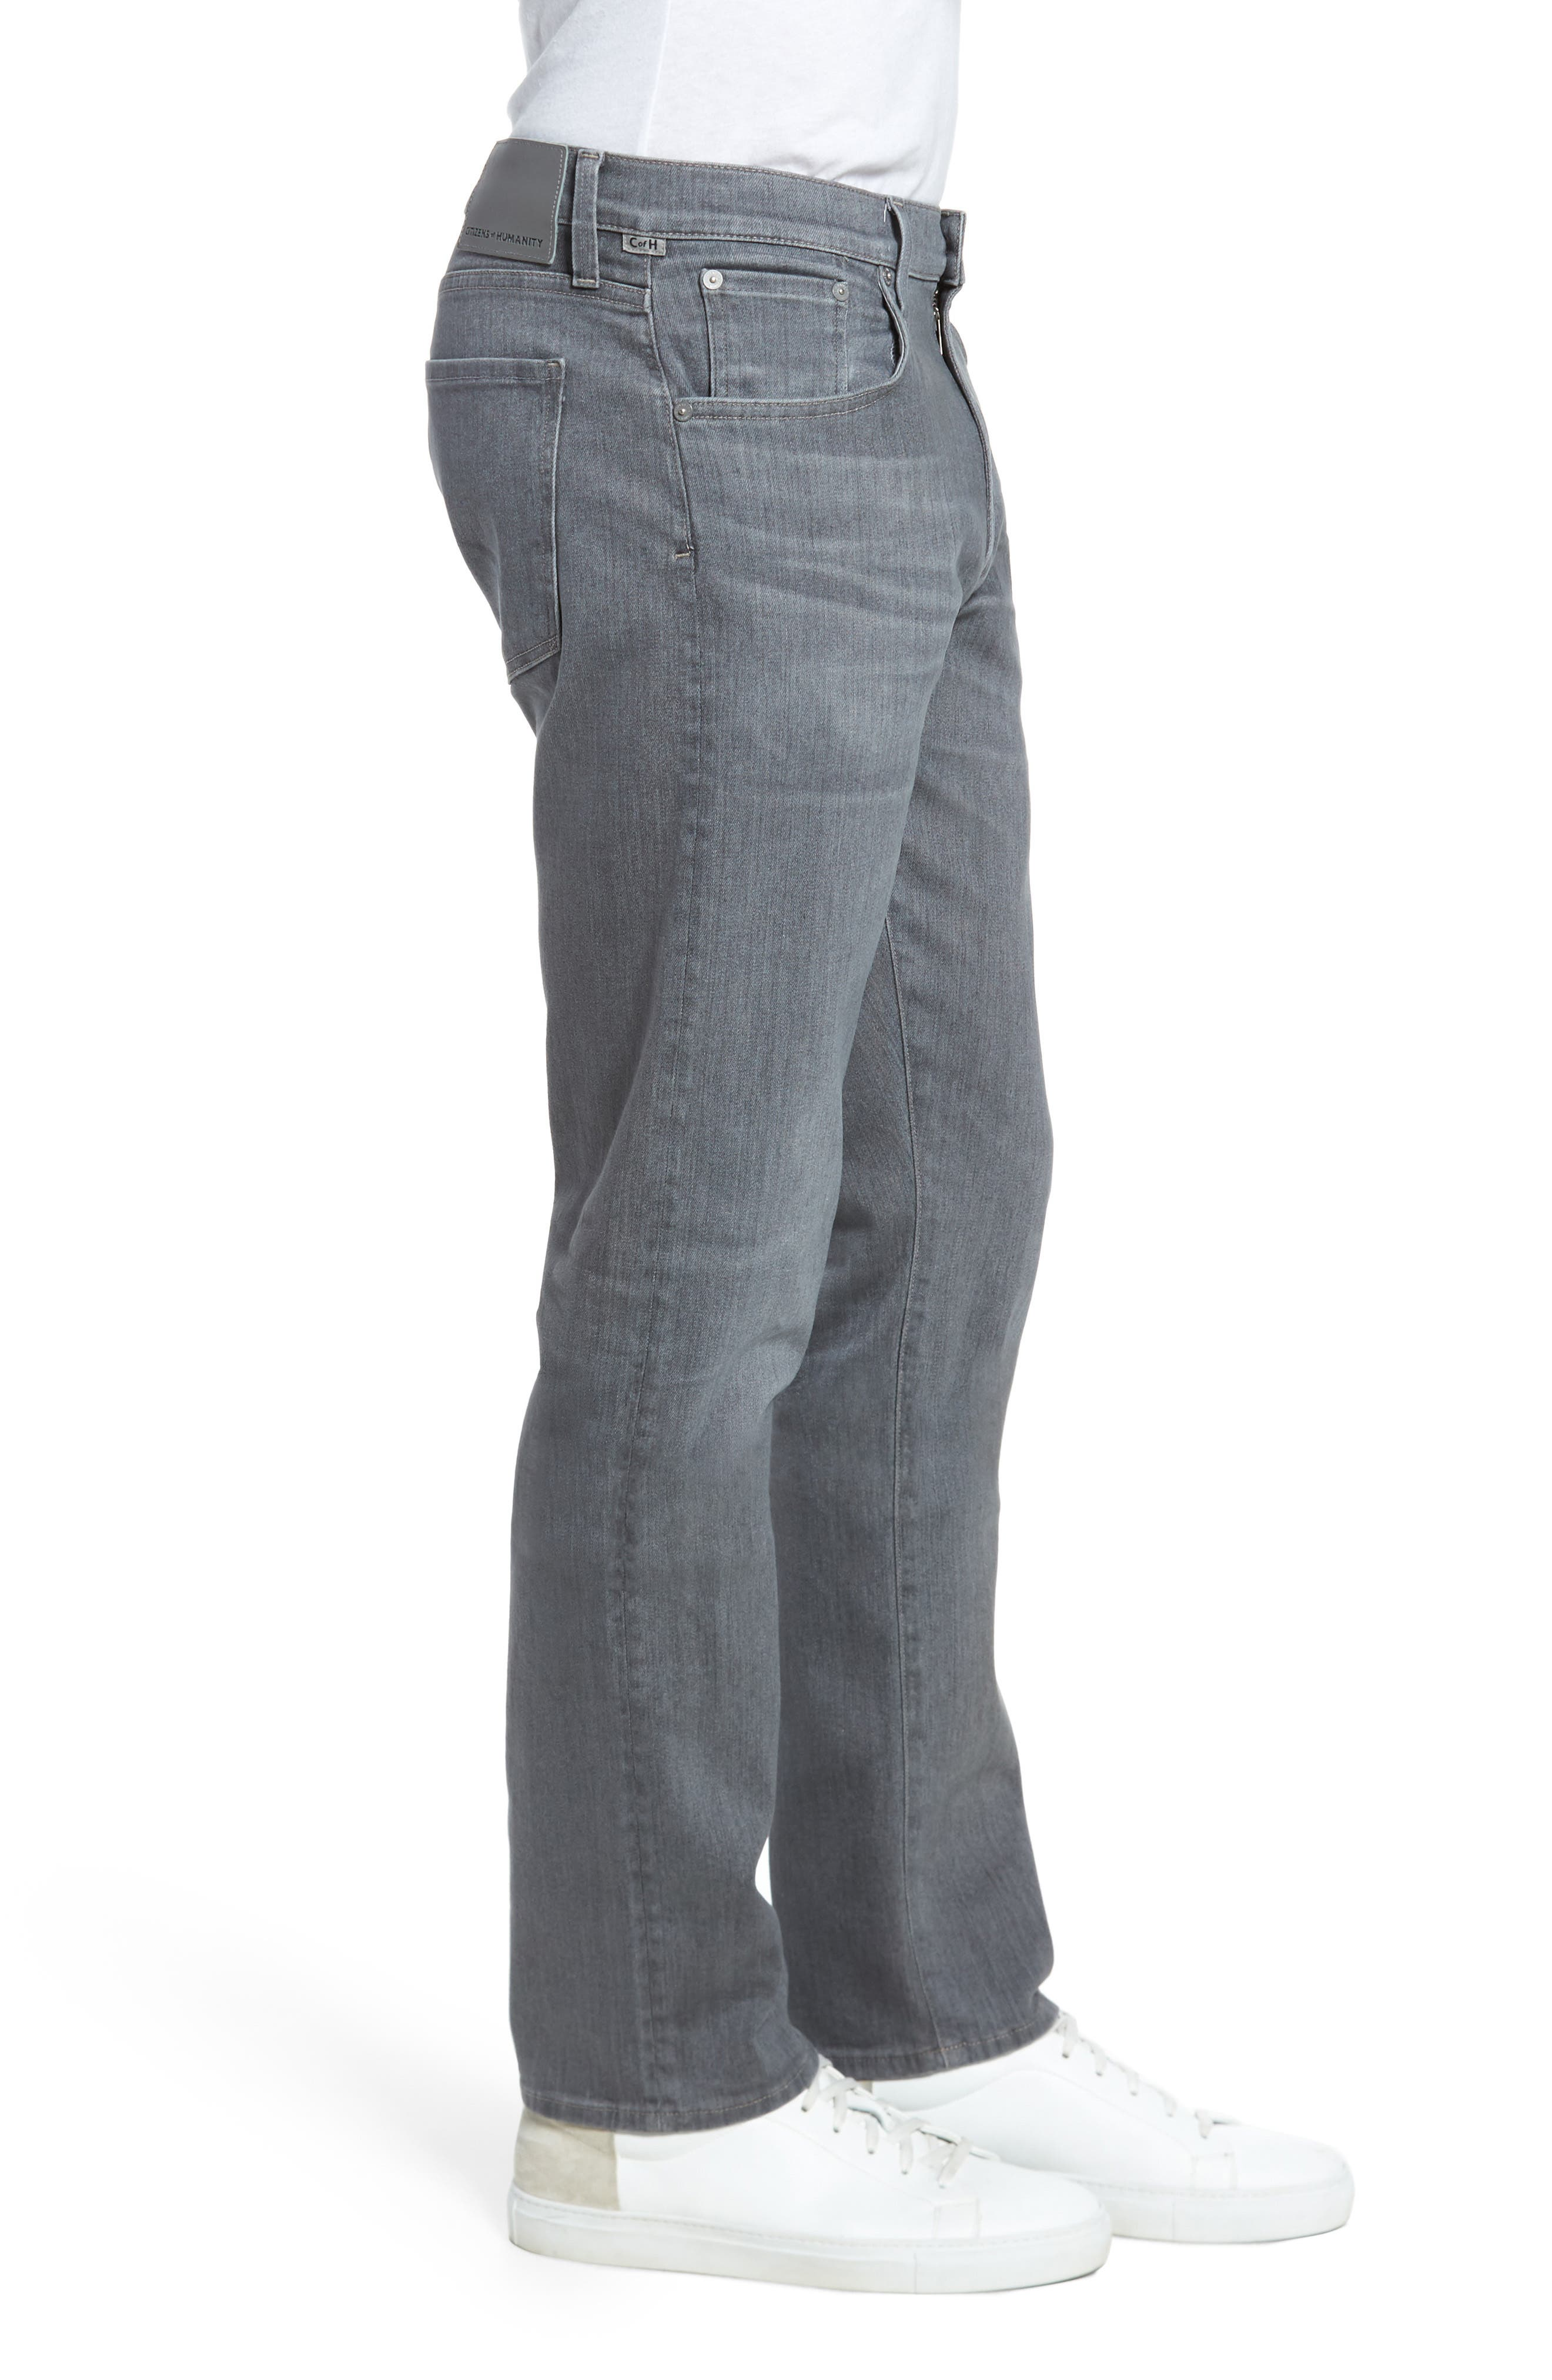 PERFORM - Gage Slim Straight Fit Jeans,                             Alternate thumbnail 3, color,                             034